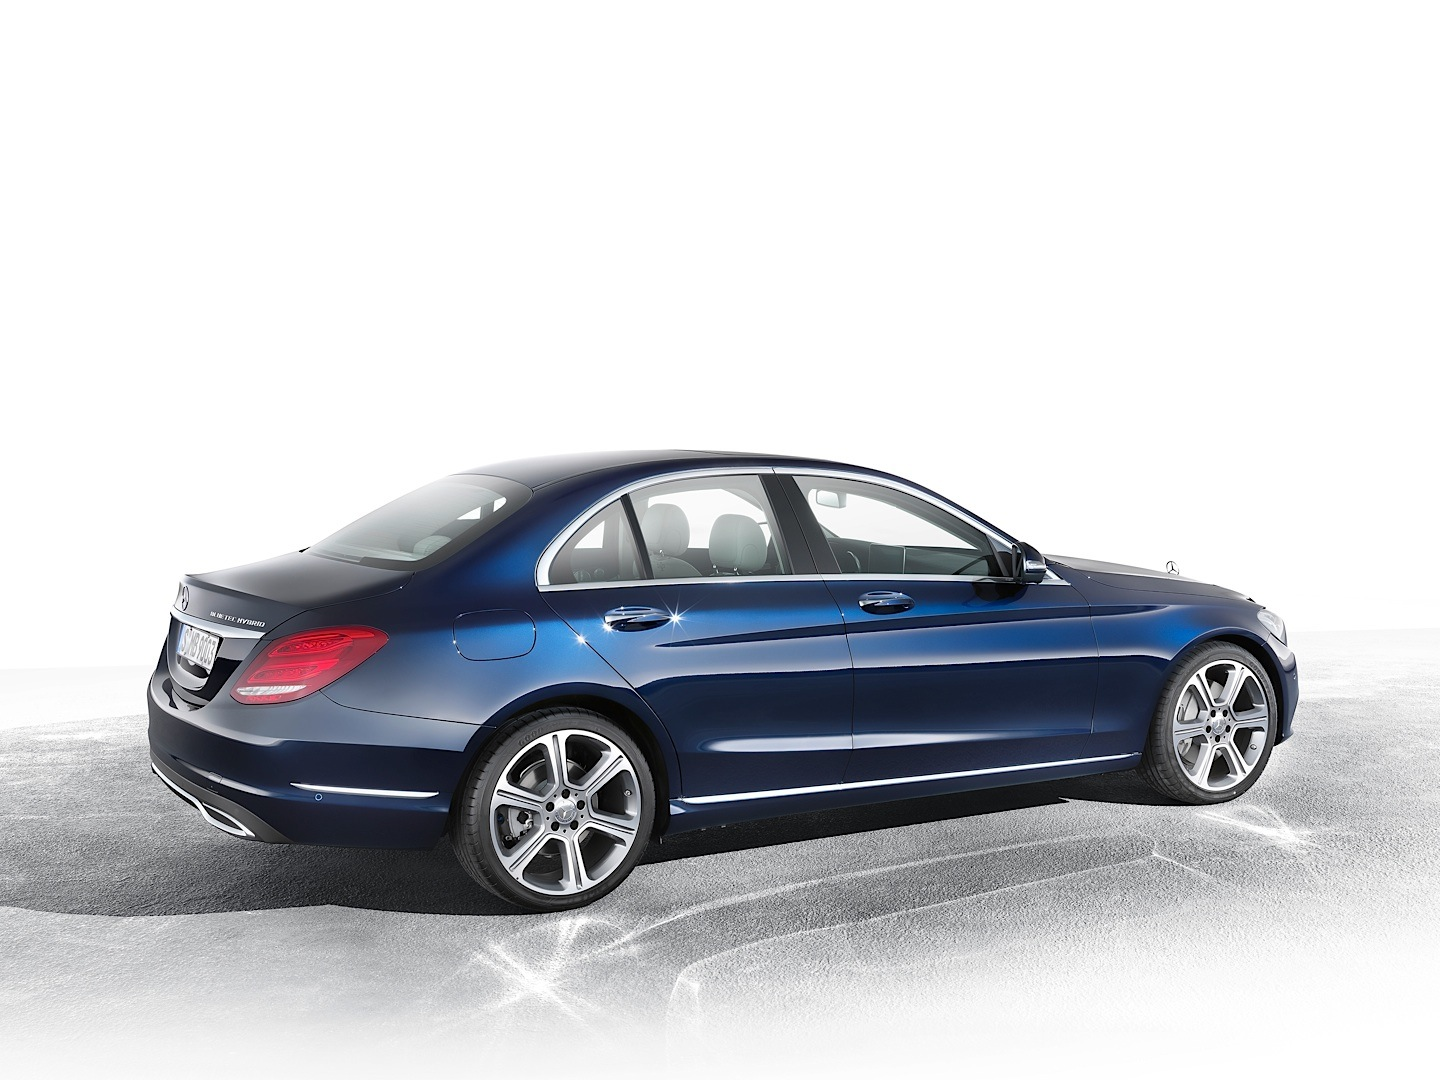 Mercedes benz delays launch of c class diesel versions in for Mercedes benz a class usa